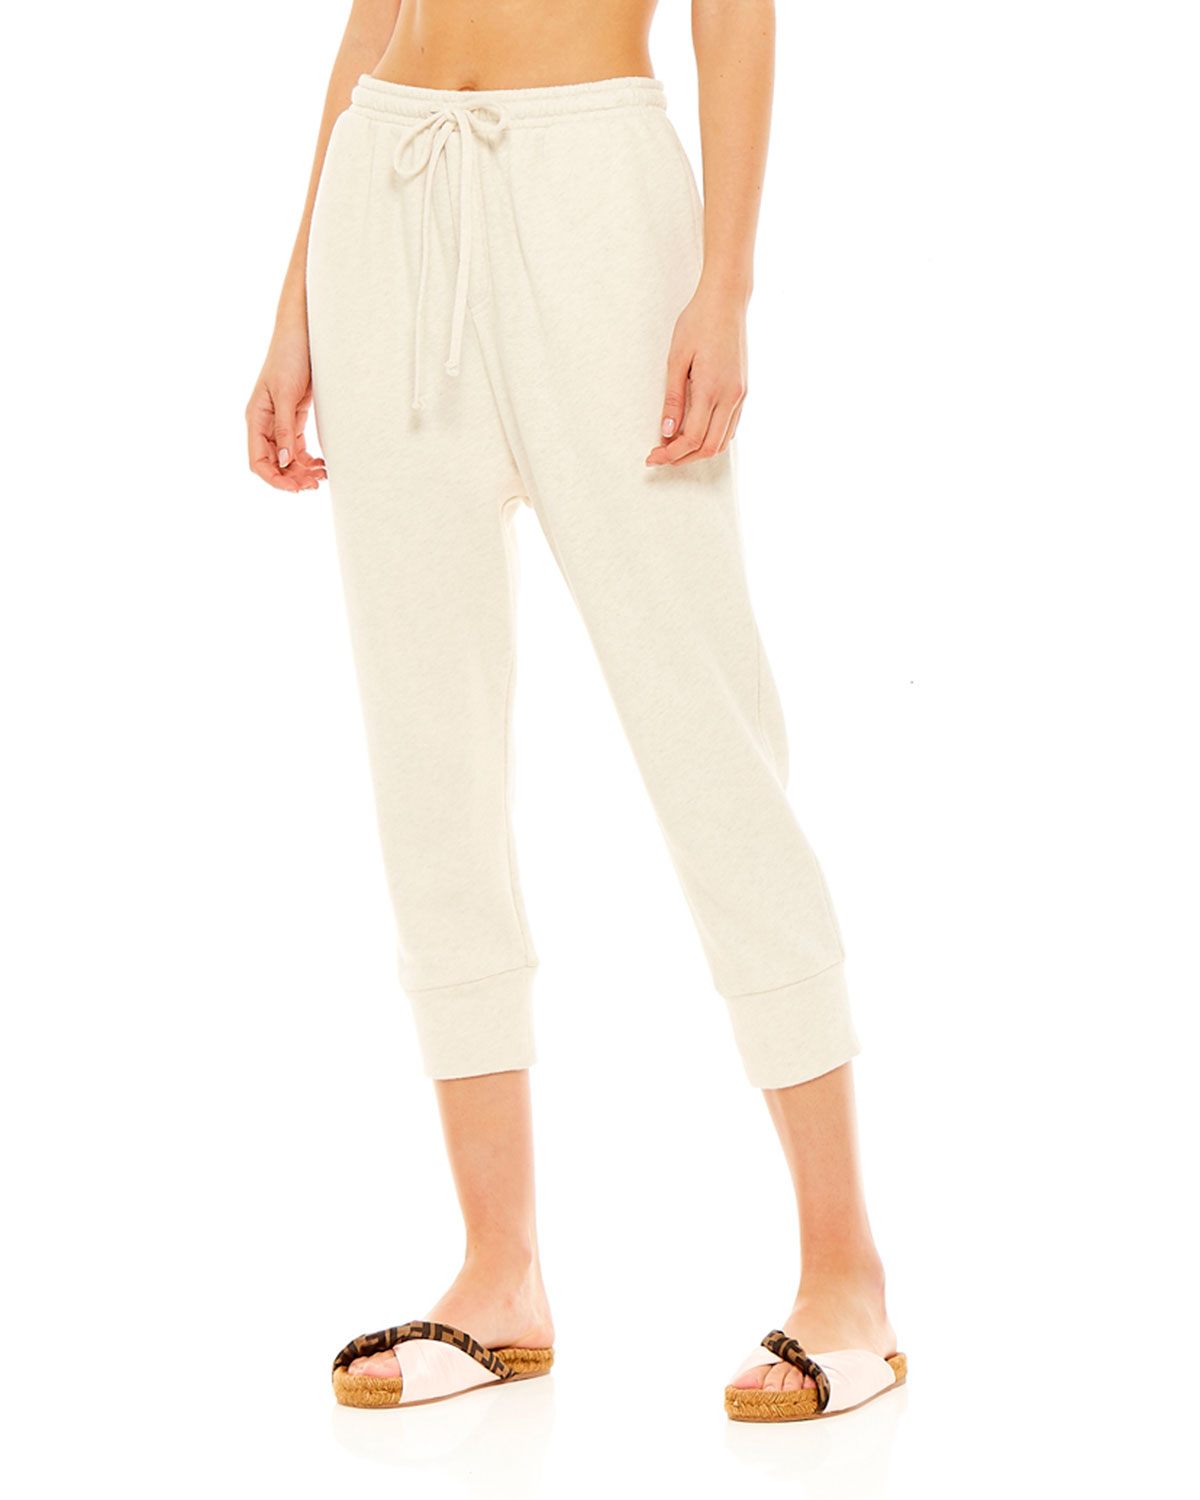 The Upside Pants LEAH DRAWSTRING CROPPED TRACK PANTS